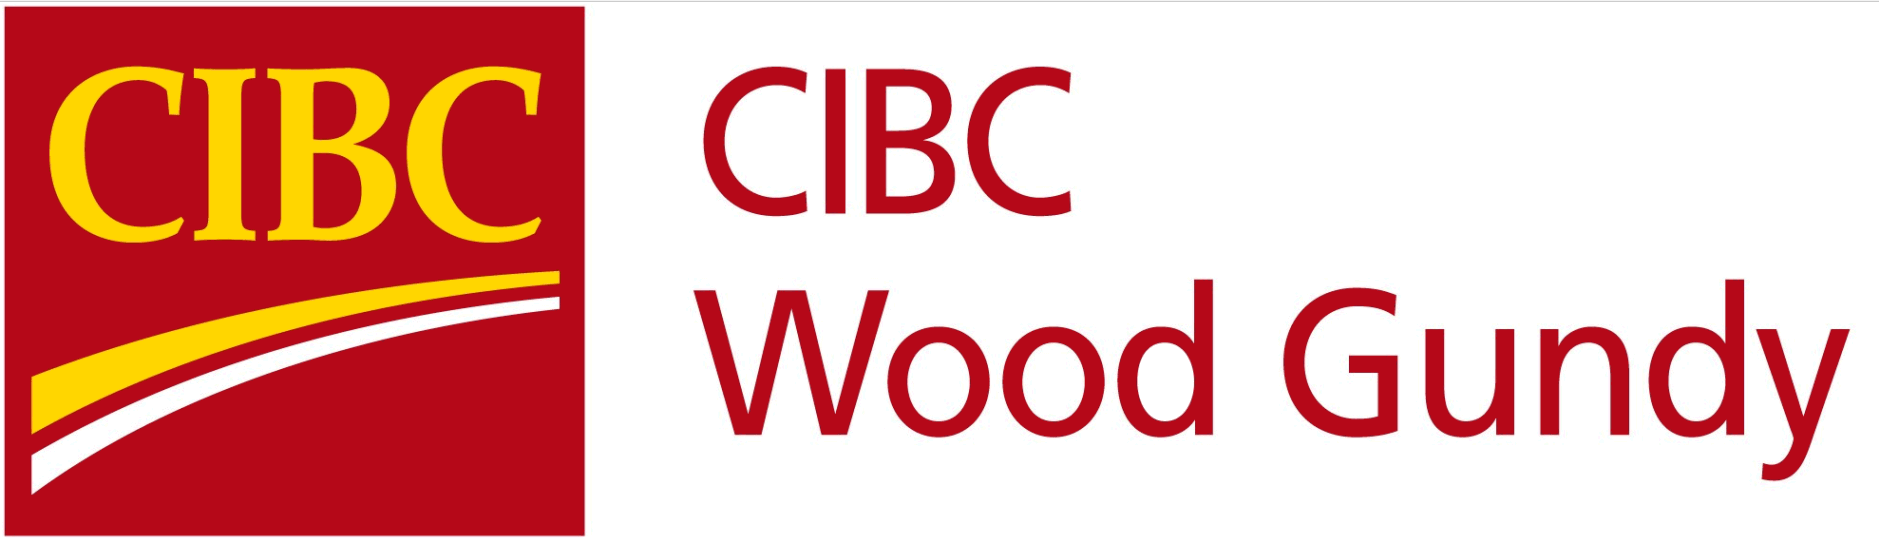 Hole Sponsor - CIBC Wood Gundy - Logo